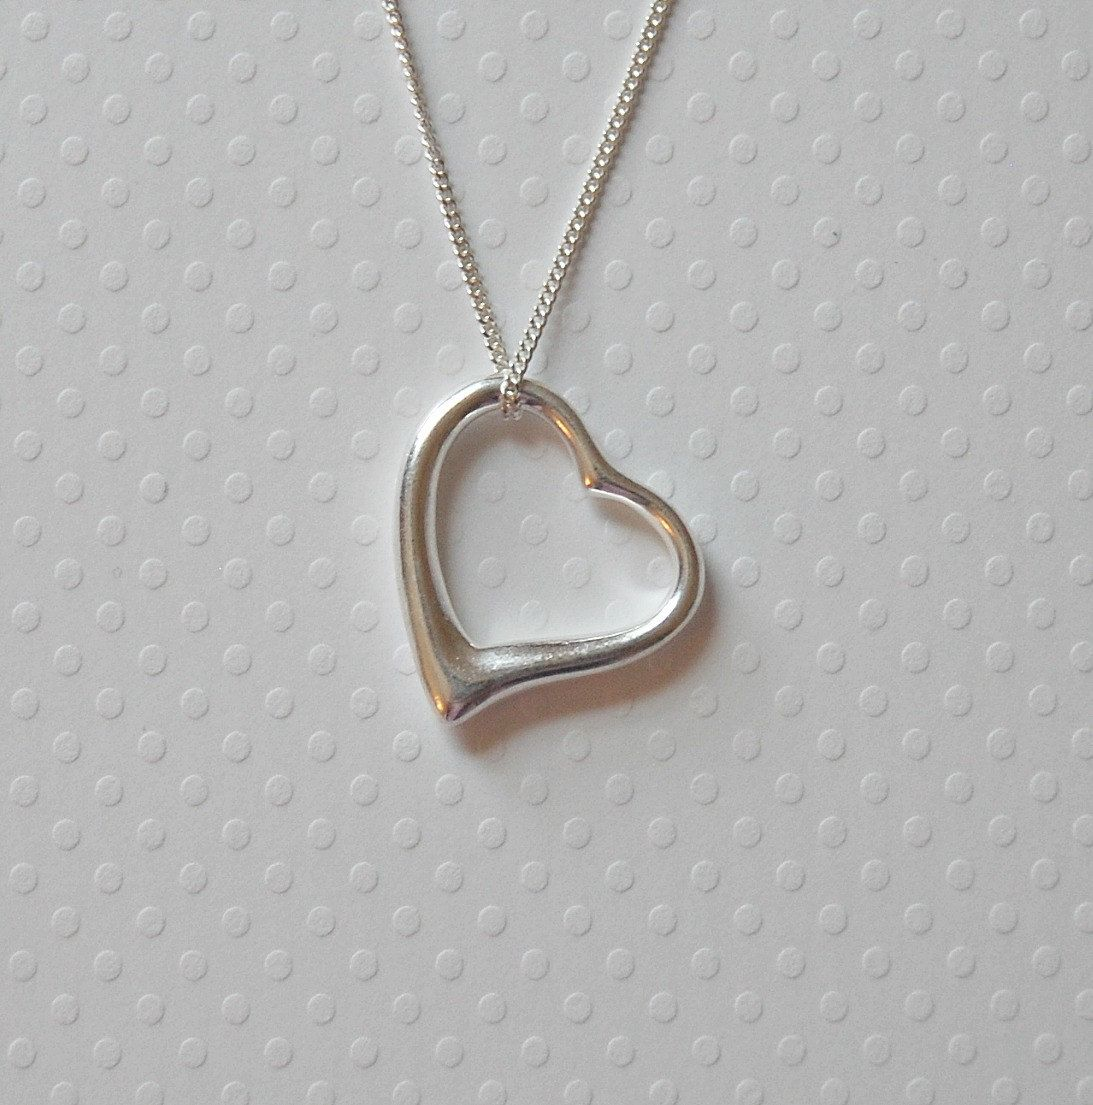 Silver heart necklace large sterling open heart pendant tiffany silver heart necklace large sterling open heart pendant tiffany style gift for her mozeypictures Gallery